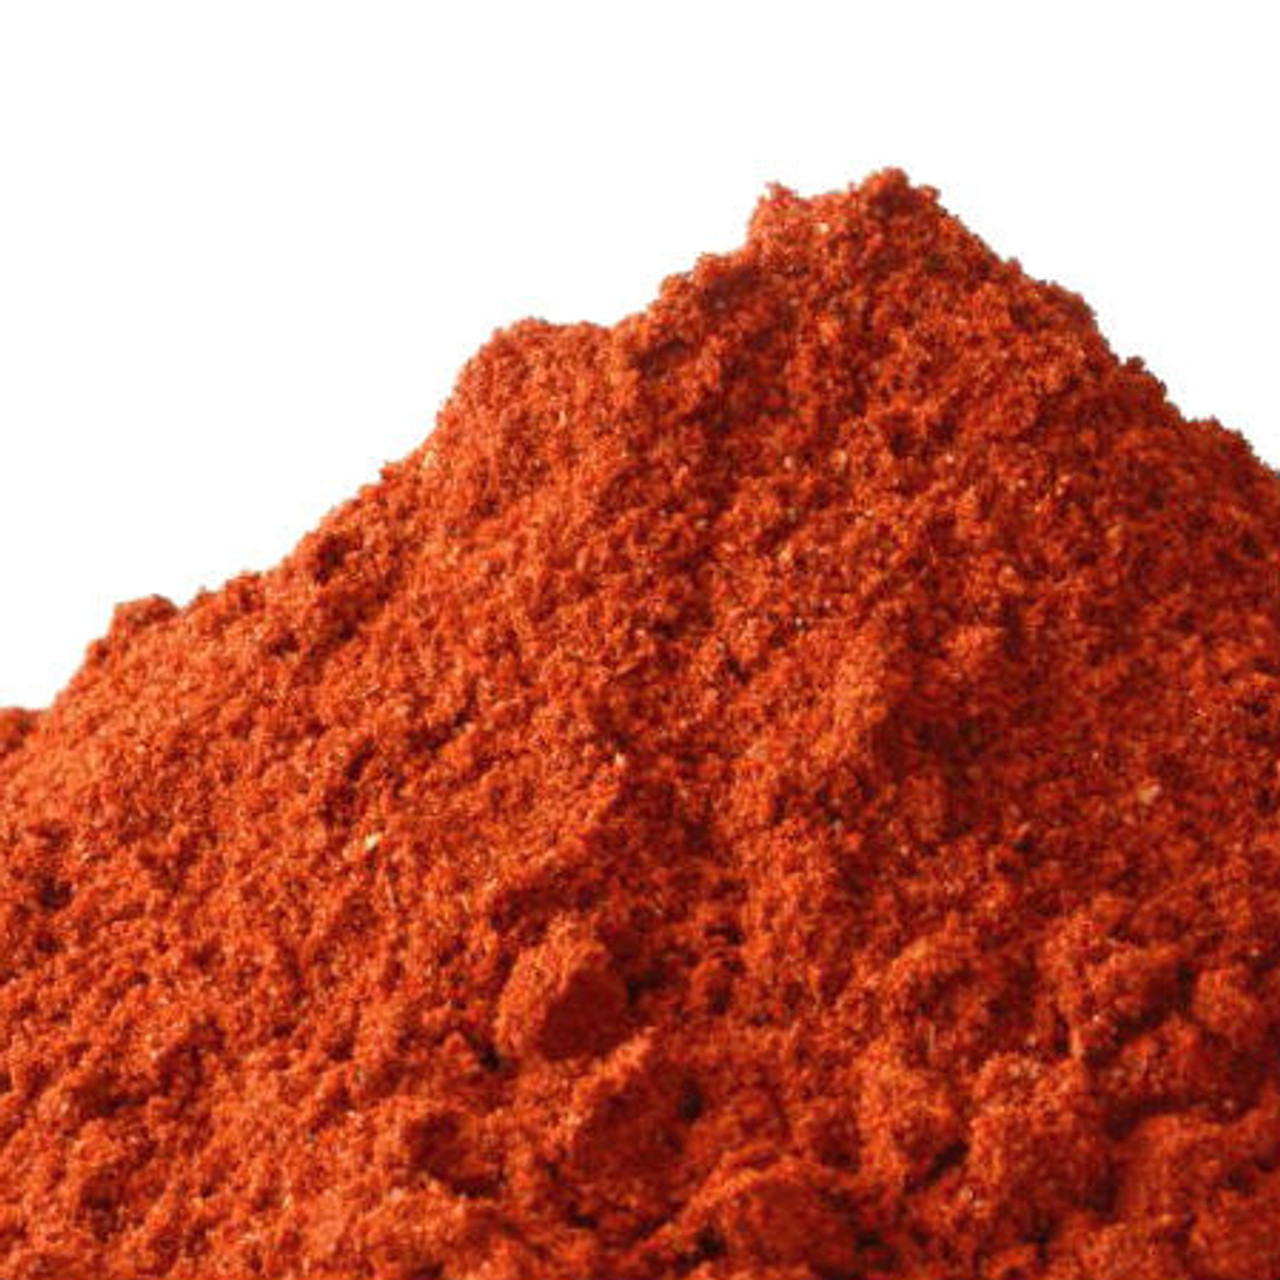 Berbere is the quintessential spice blend of Ethiopian cuisine, lending a rustic, bold flavor to traditional dishes and grilled meats. We blend the hard-to-find seasonings with ground chiles, cardamom, cumin and clove for our Berbere. Add 1/2 teaspoon Berbere per 1 cup of raw rice at the start of cooking for an exotic flavor. Sprinkle on steak, chicken or fatty fish such as salmon before grilling. Sprinkle on vegetables before roasting. Add a pinch to honey cake, spice cake, fruitcake or gingerbread batter.